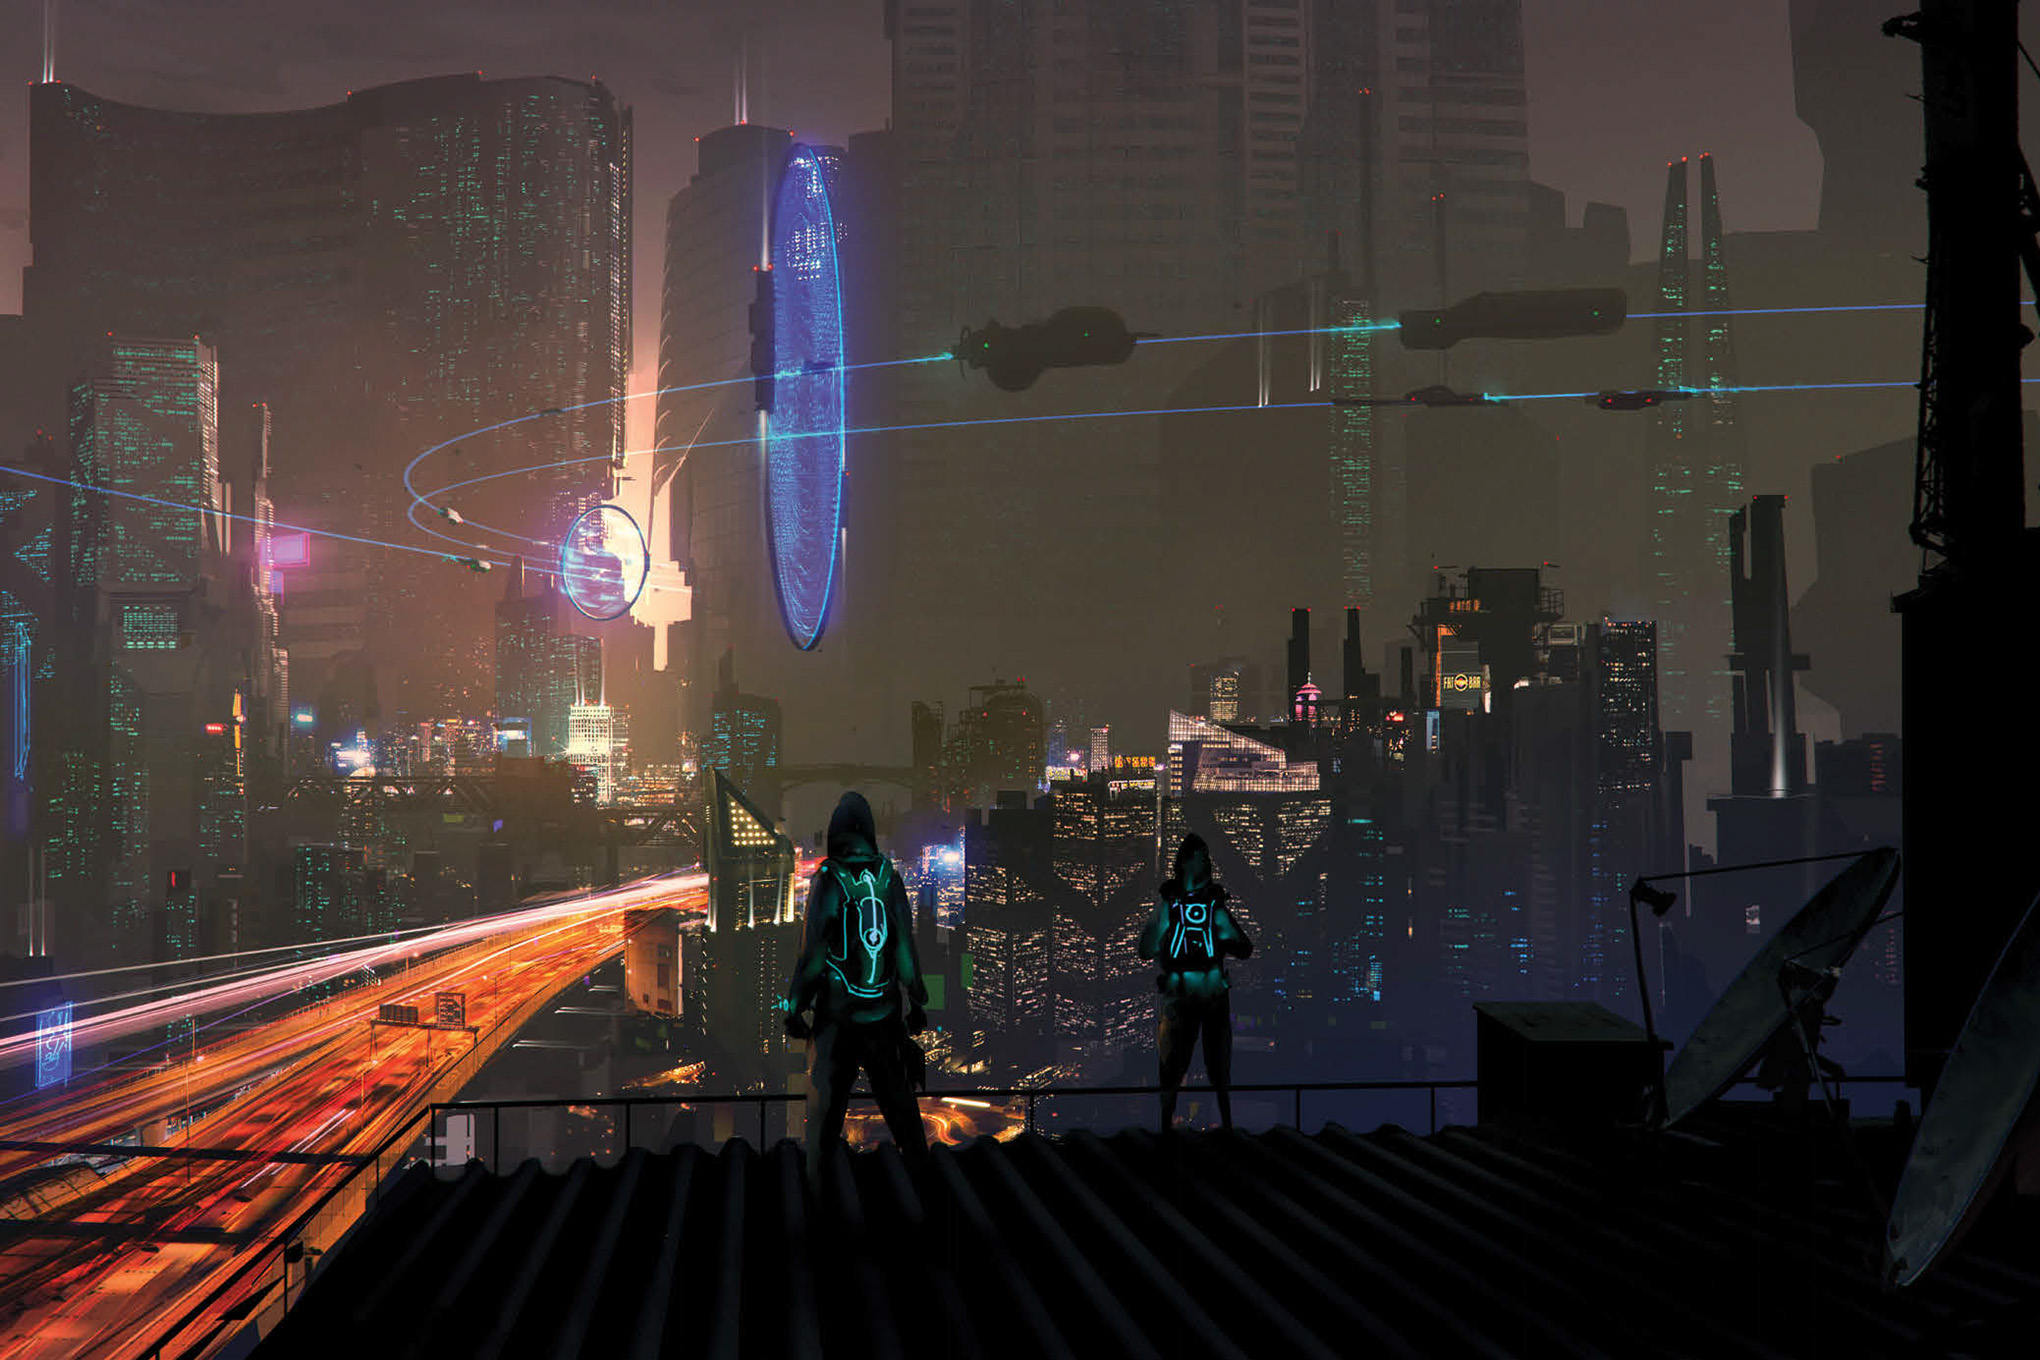 A view of Night City at dusk. Flying cars move through the sky, while edgerunners wearing jackets laced with glowing thread set up shop on a rooftop and prepare for a heist.